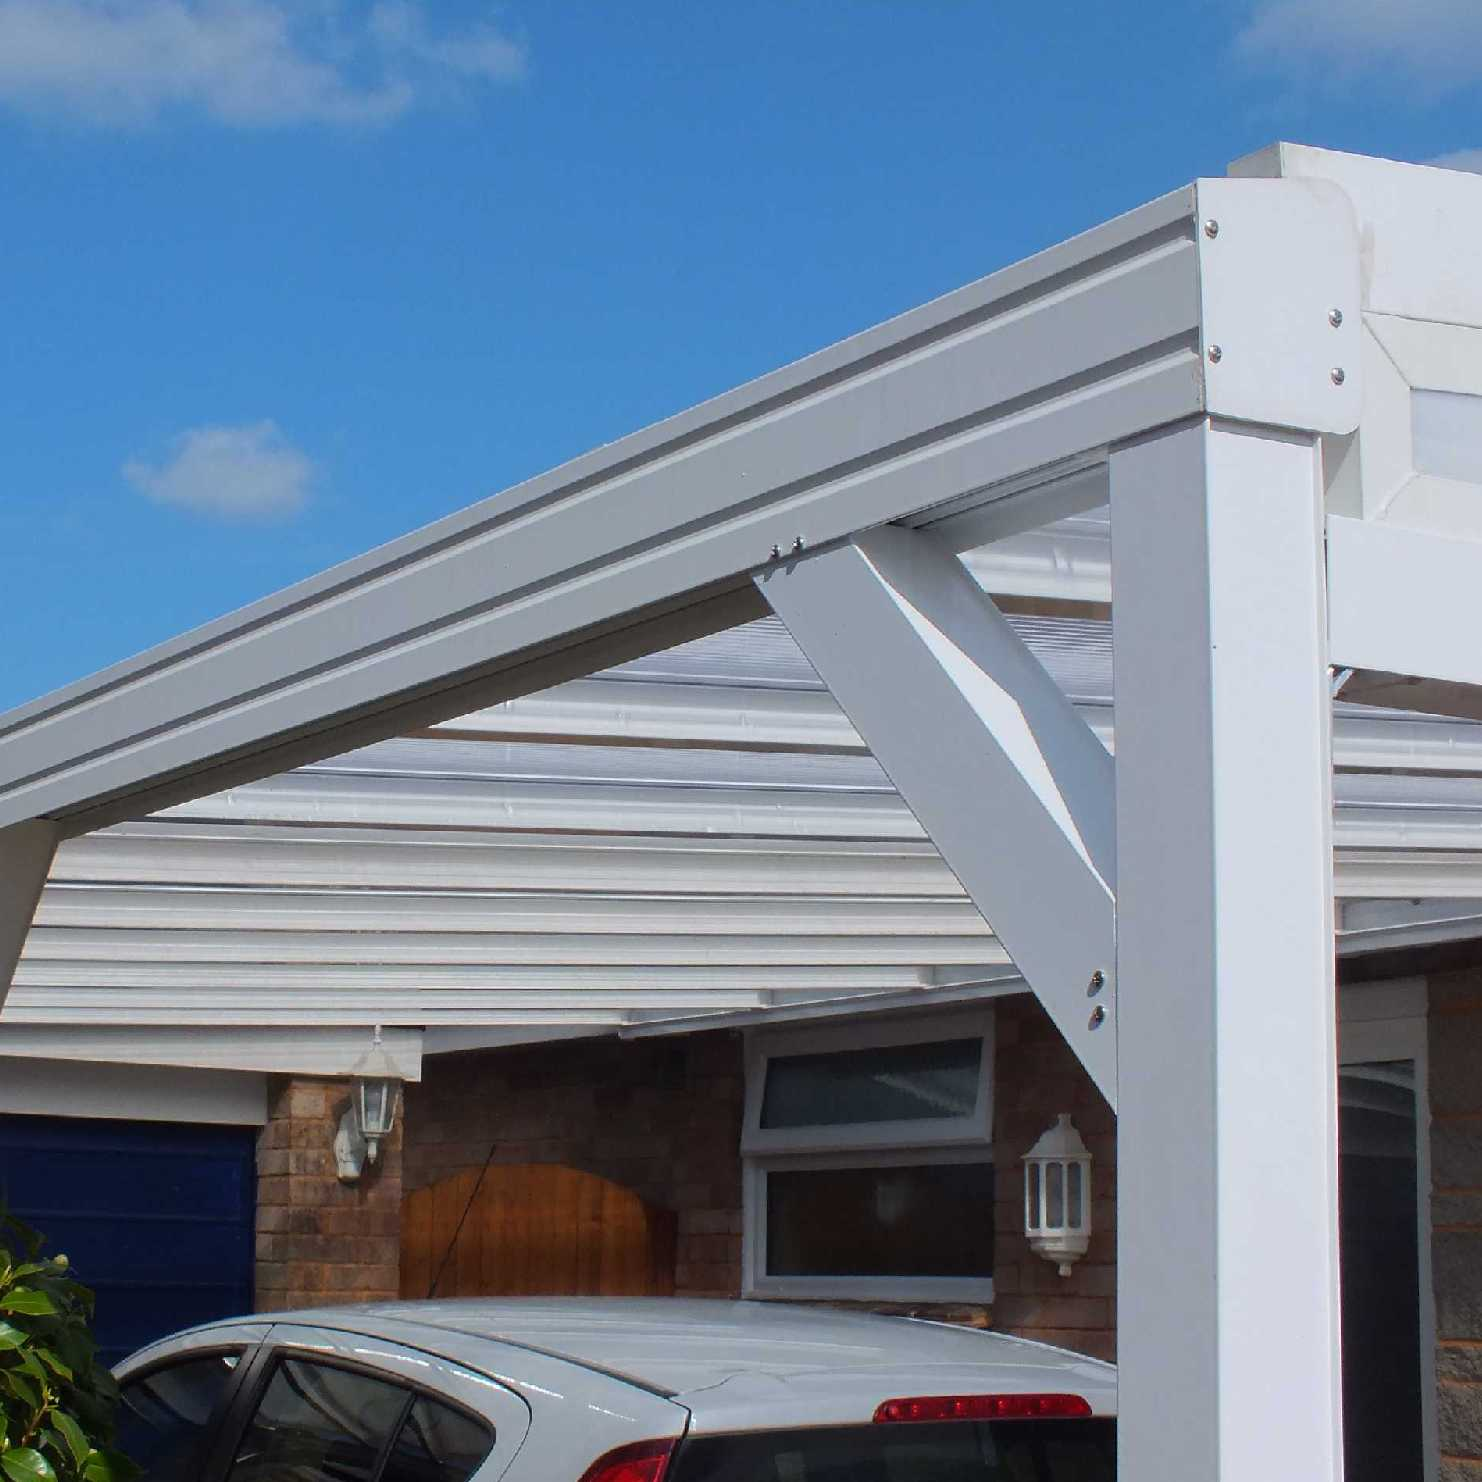 Buy Omega Smart White Lean-To Canopy with 16mm Polycarbonate Glazing - 12.0m (W) x 3.5m (P), (5) Supporting Posts online today